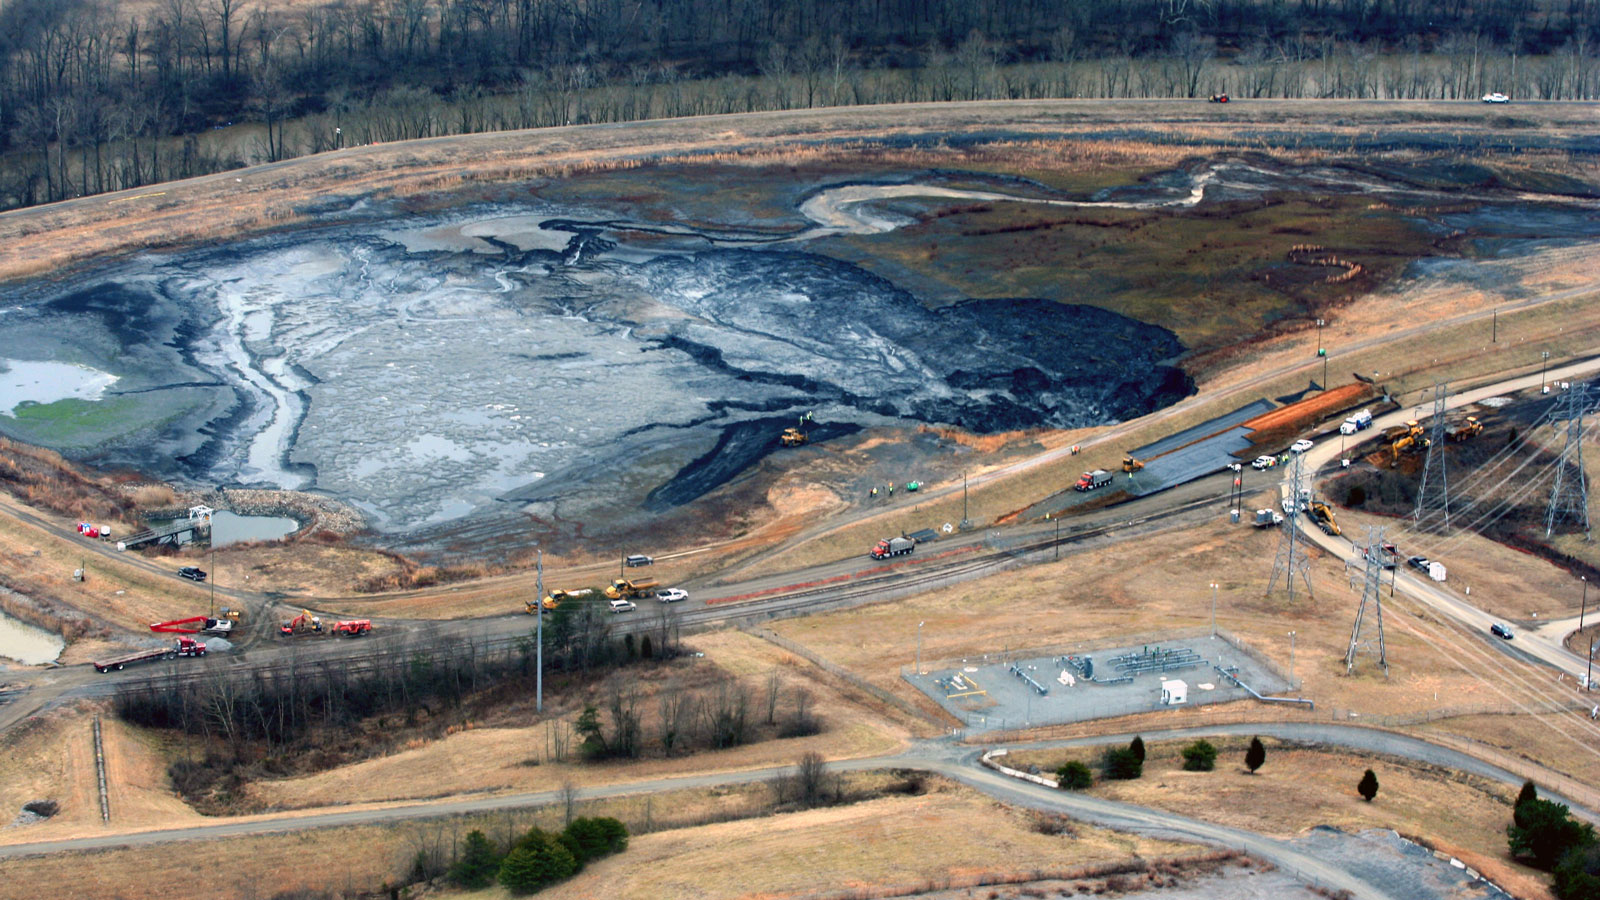 <h4>Coal ash pits</h4> <h5>In 2014, 39,000 tons of toxic coal ash and 27 million gallons of coal ash pit water spilled into the Dan River in North Carolina after a pipe burst at the Dan River Steam Station.</h5><em>Waterkeeper Alliance/Rick Dove on Flickr (CC BY-NC 2.0)</em>